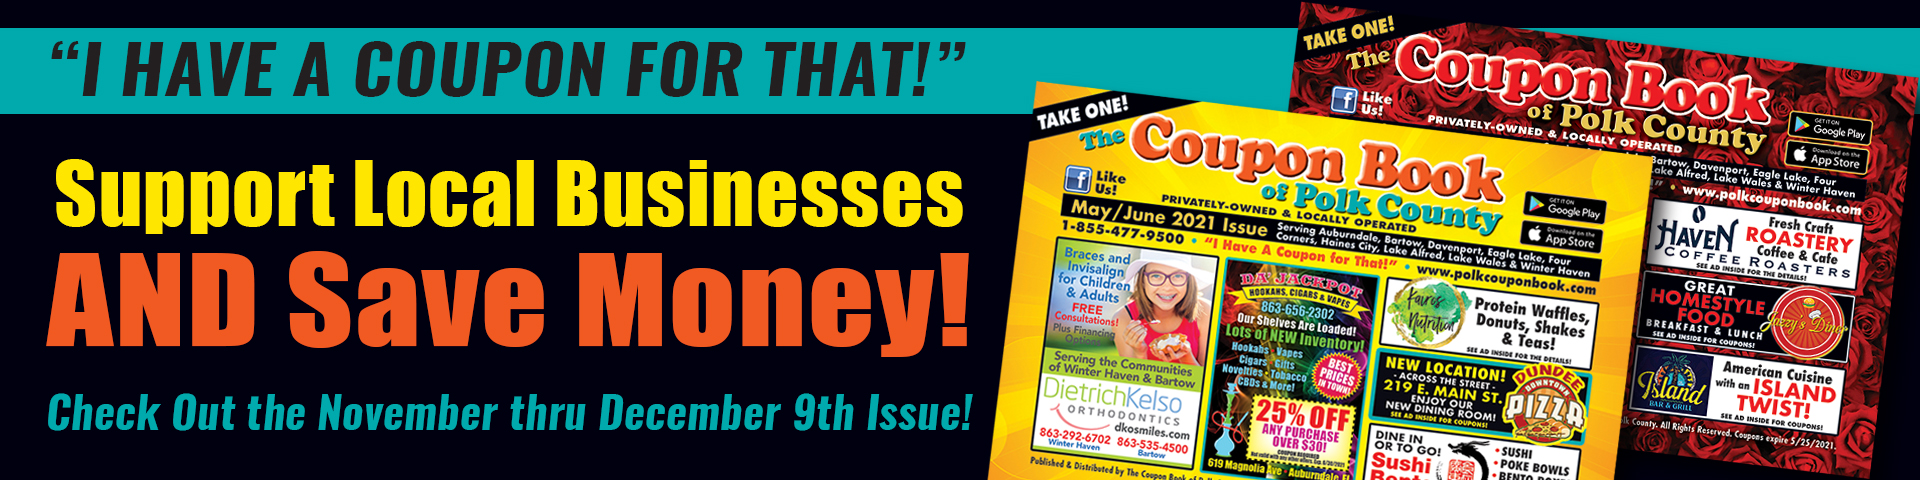 The Coupon Book of Polk County